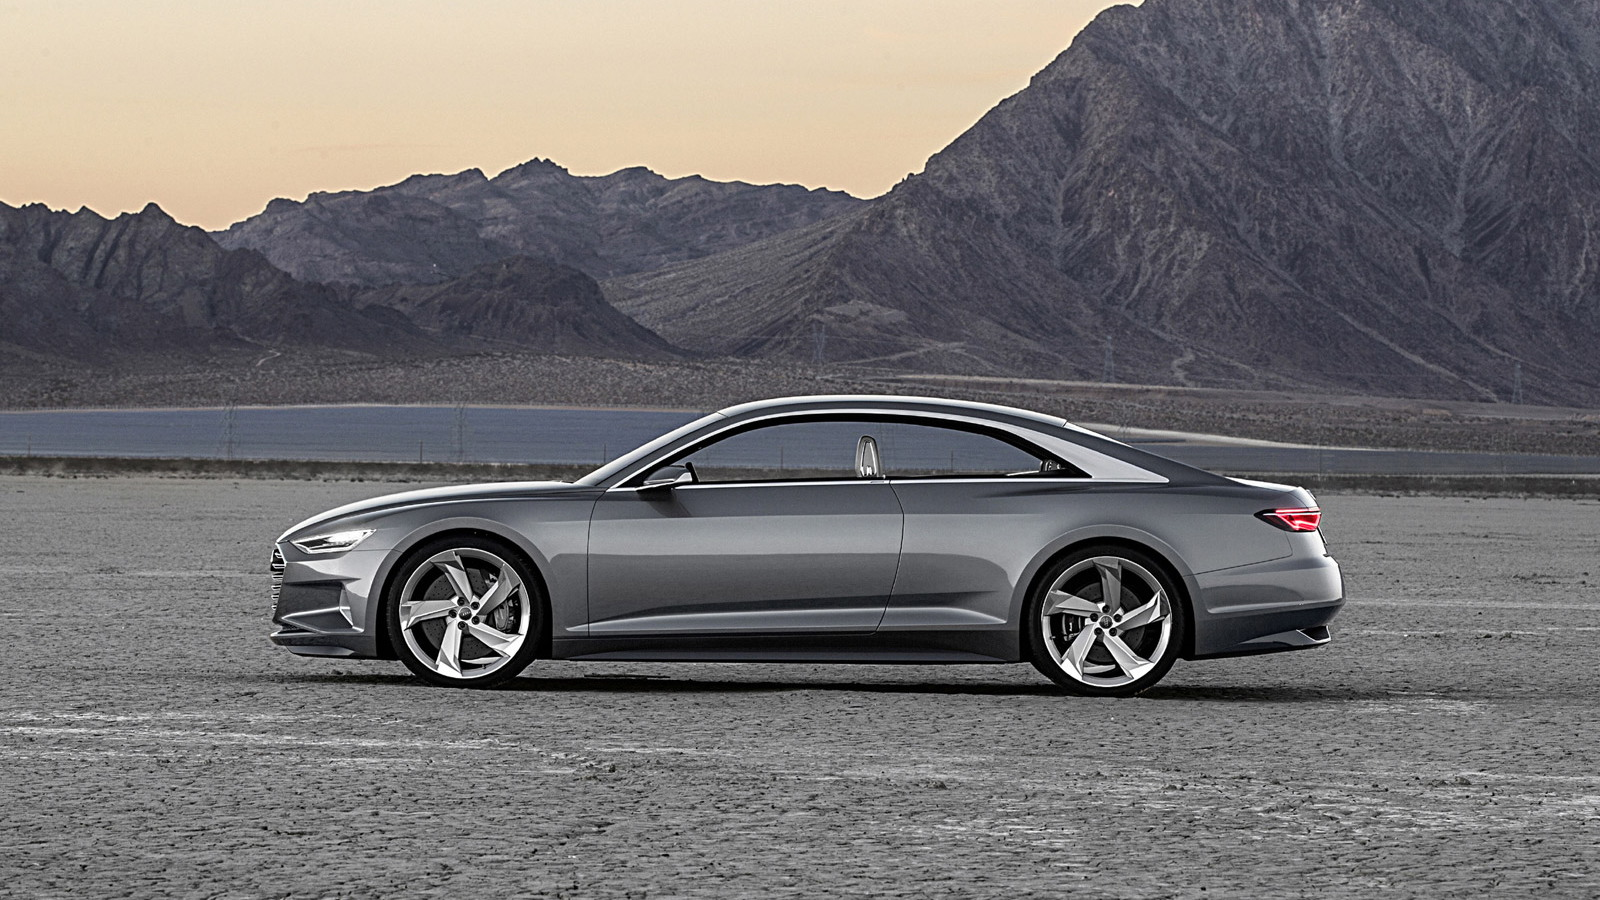 Audi Prologue Piloted Driving concept, 2015 Consumer Electronics Show